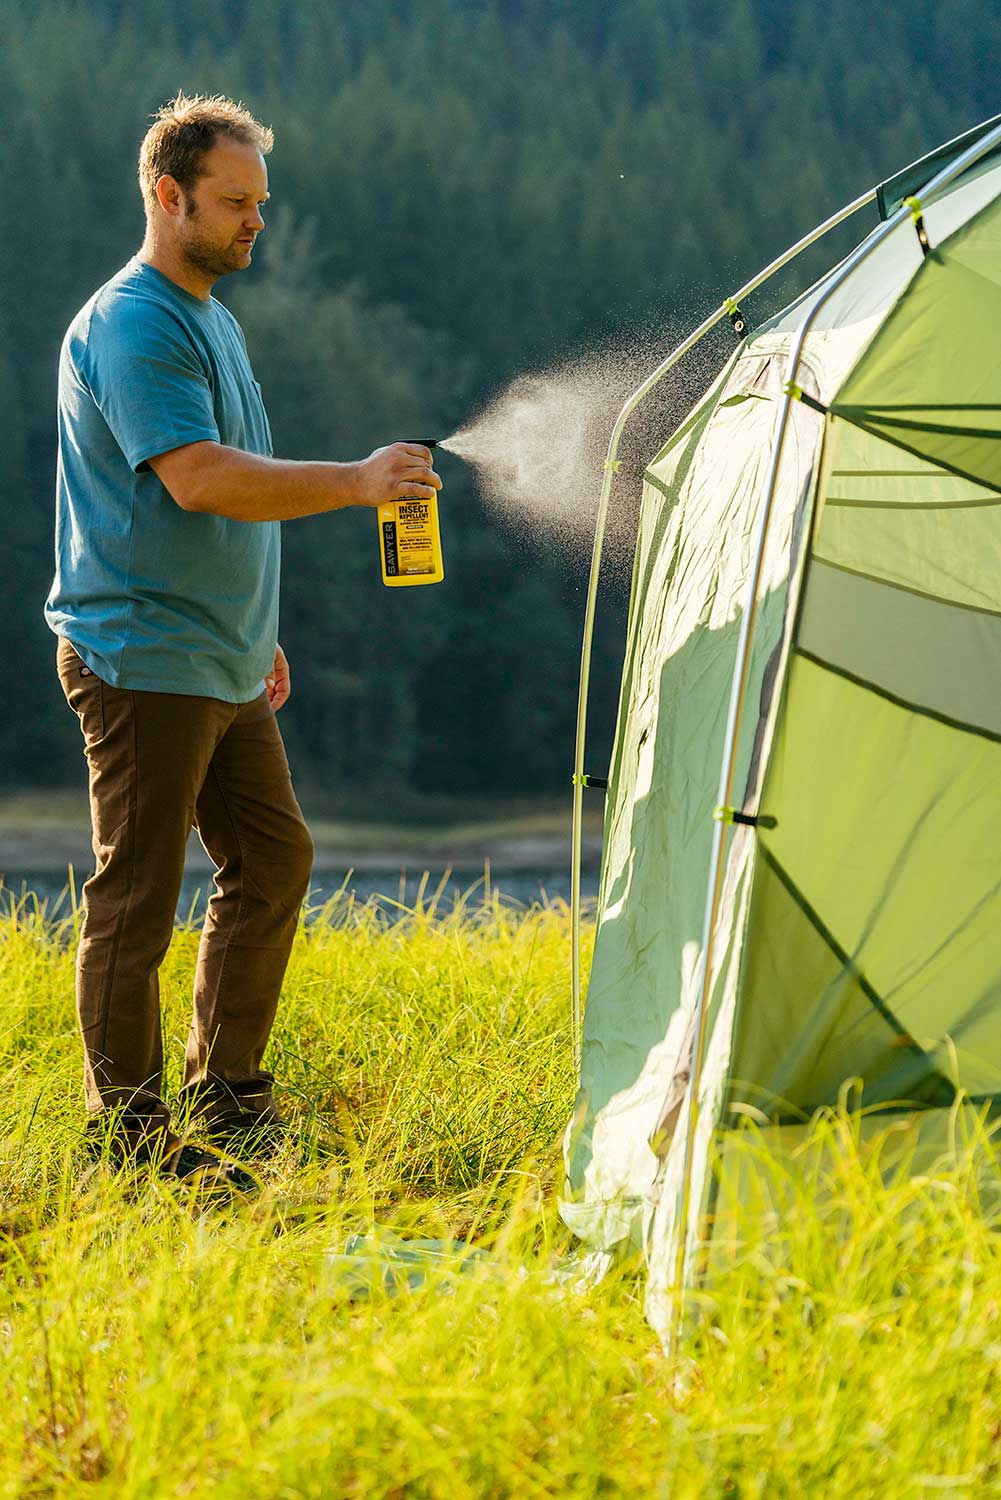 A Gentleman Treats his Tent with Sawyer Permethrin Fabric Insect Repellent for Clothing and Gear